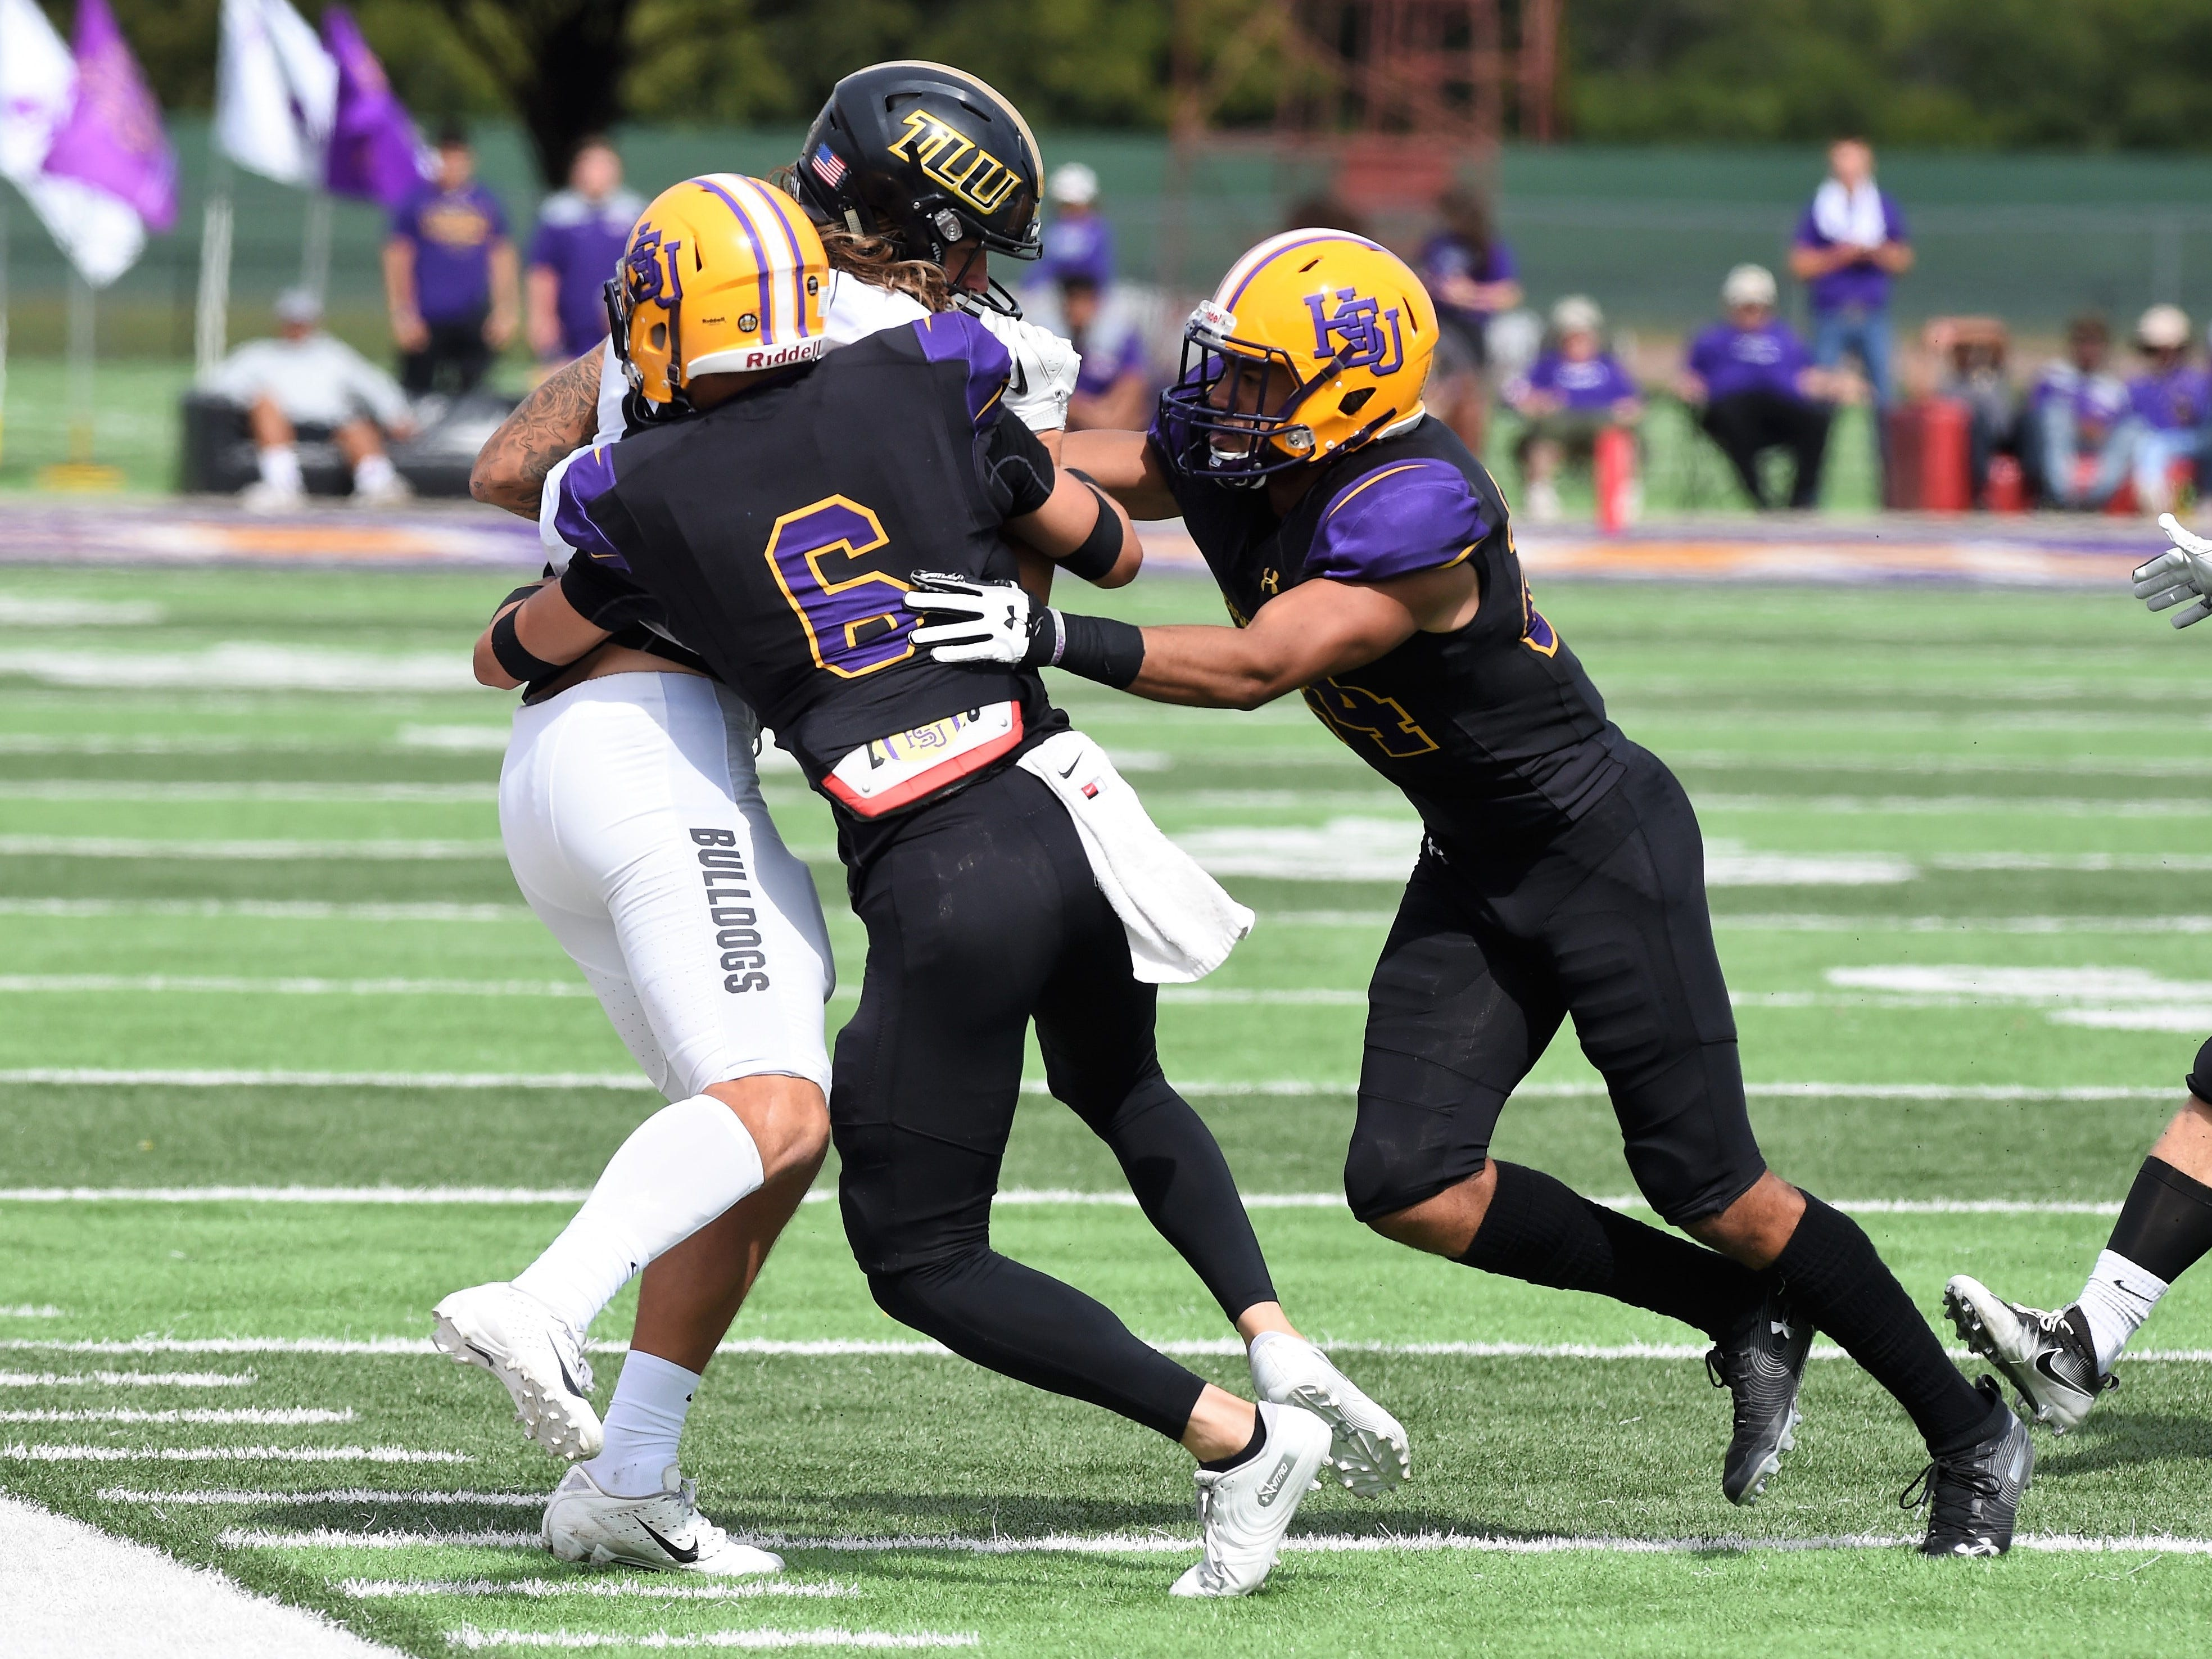 Hardin-Simmons defensive back Zac Richardson (6) and Dedrick Strambler (24) combine to make a tackle against Texas Lutheran at Shelton Stadium on Saturday, Oct. 20, 2018.